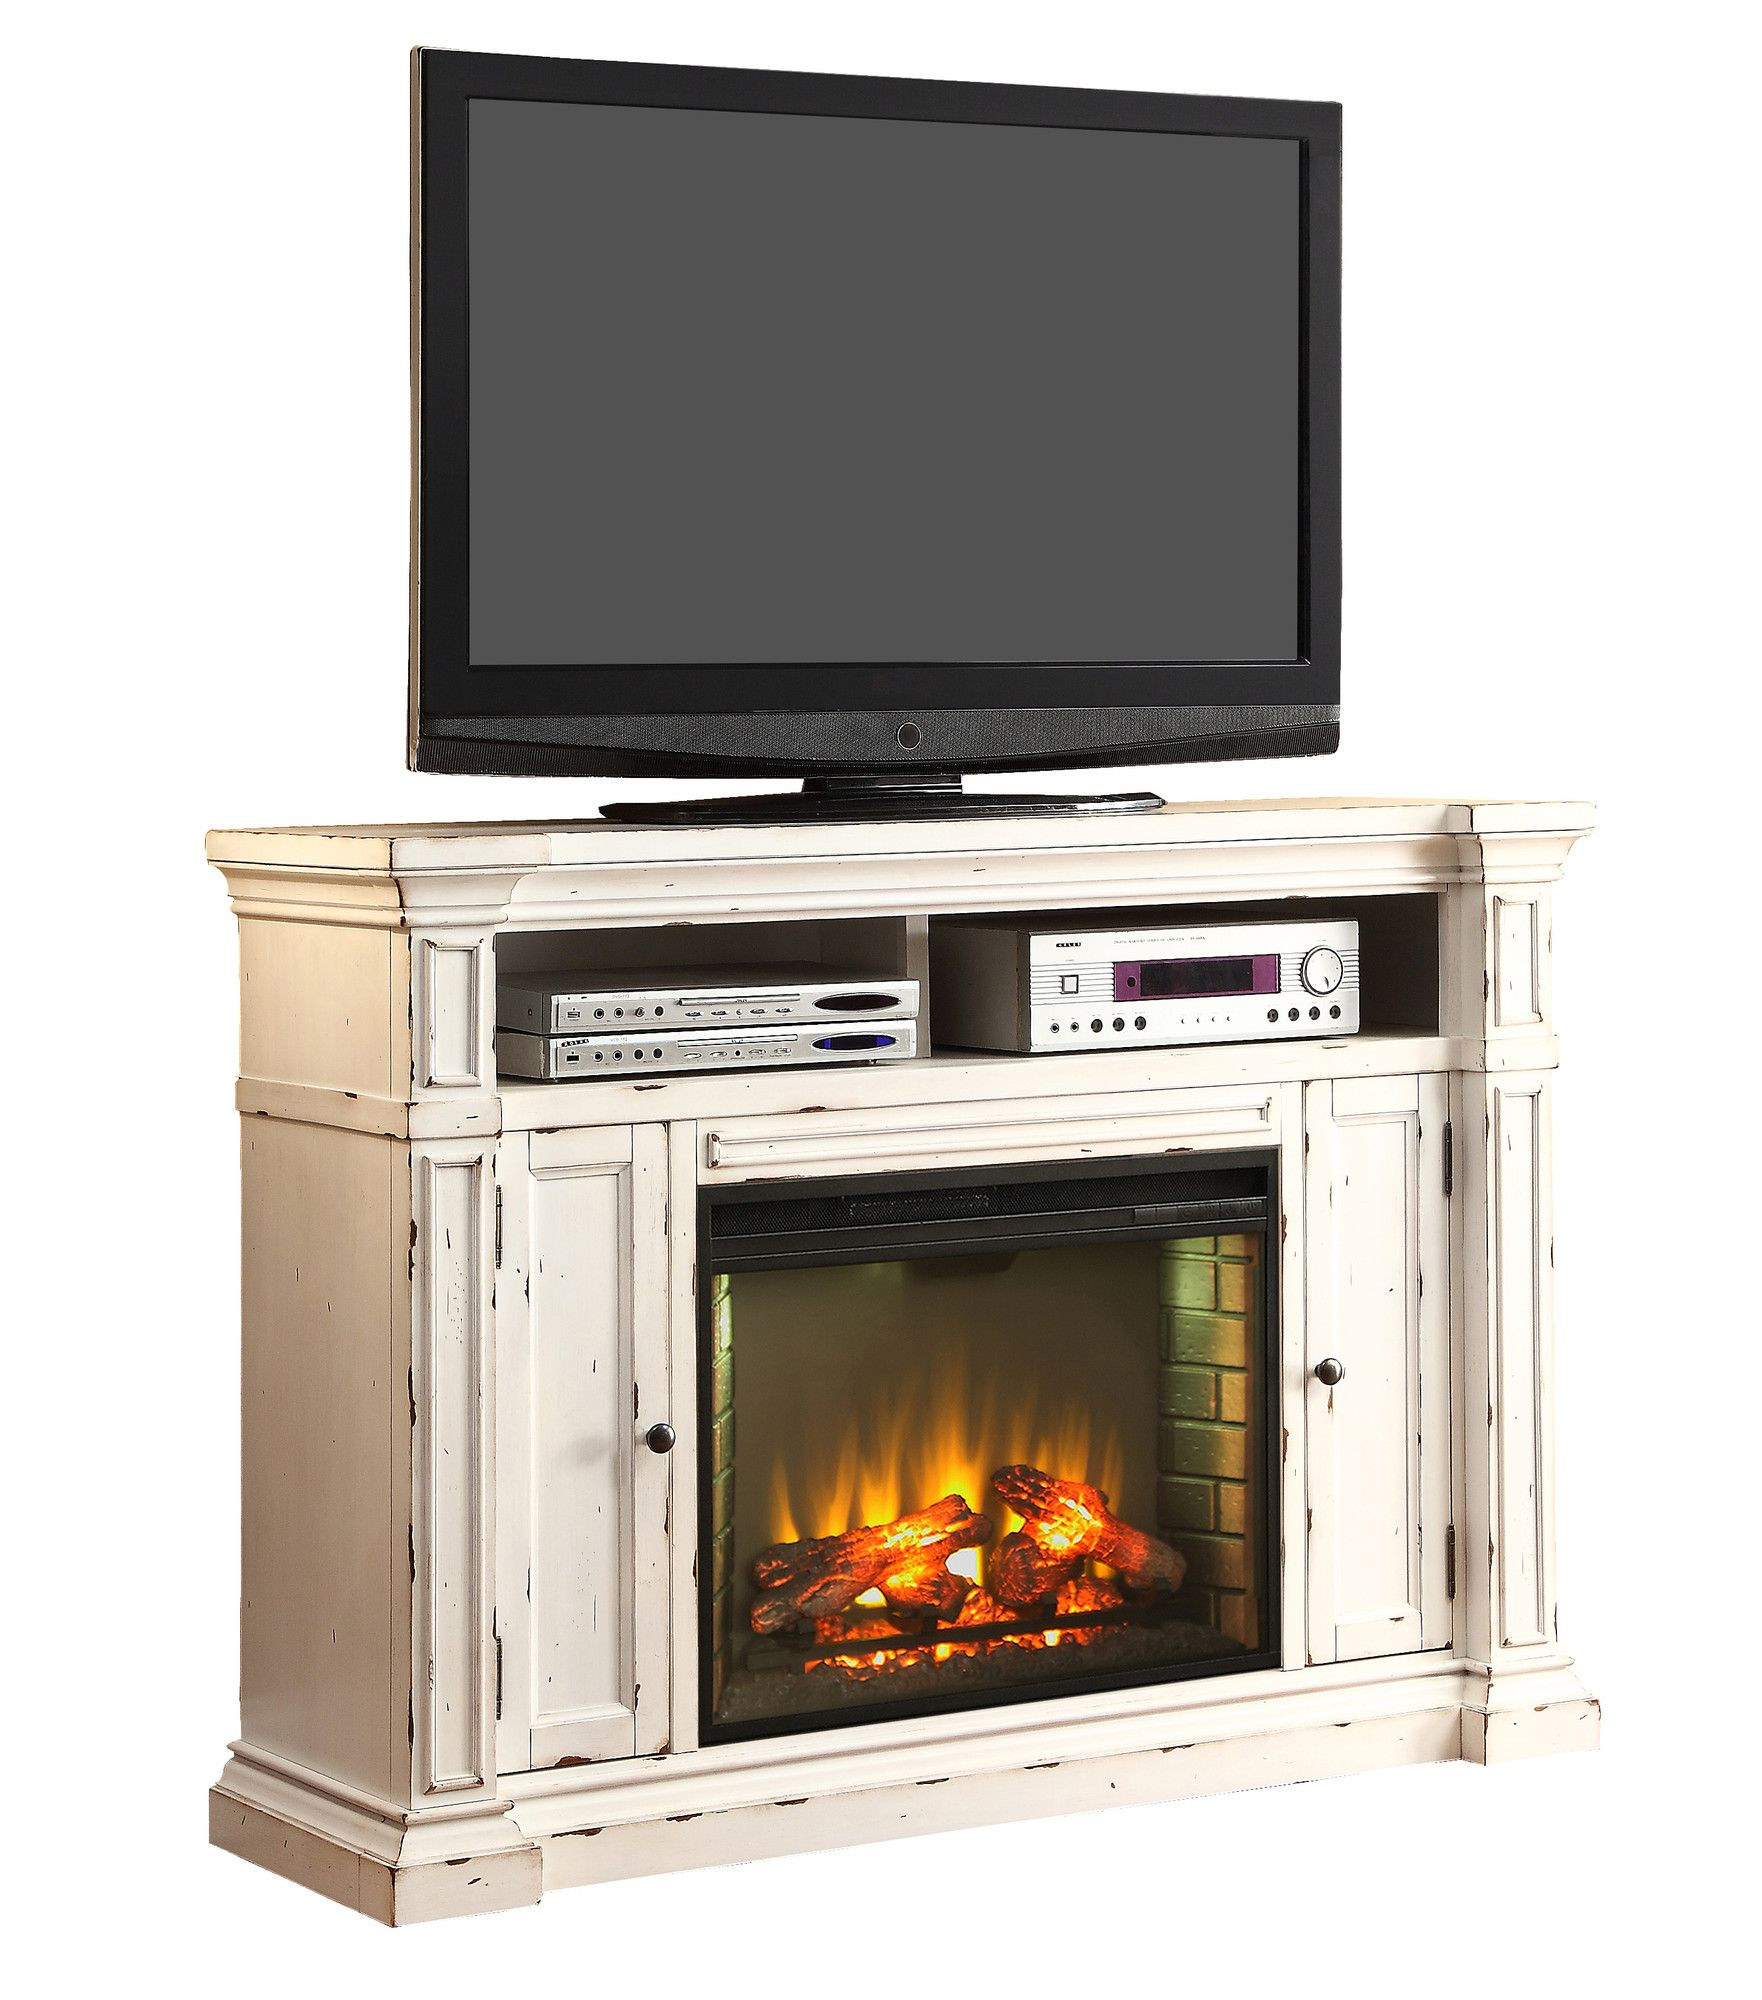 Fireplace tv stand electric fireplaces in arizona electric fireplace - New Castle Tv Stand With Electric Fireplace